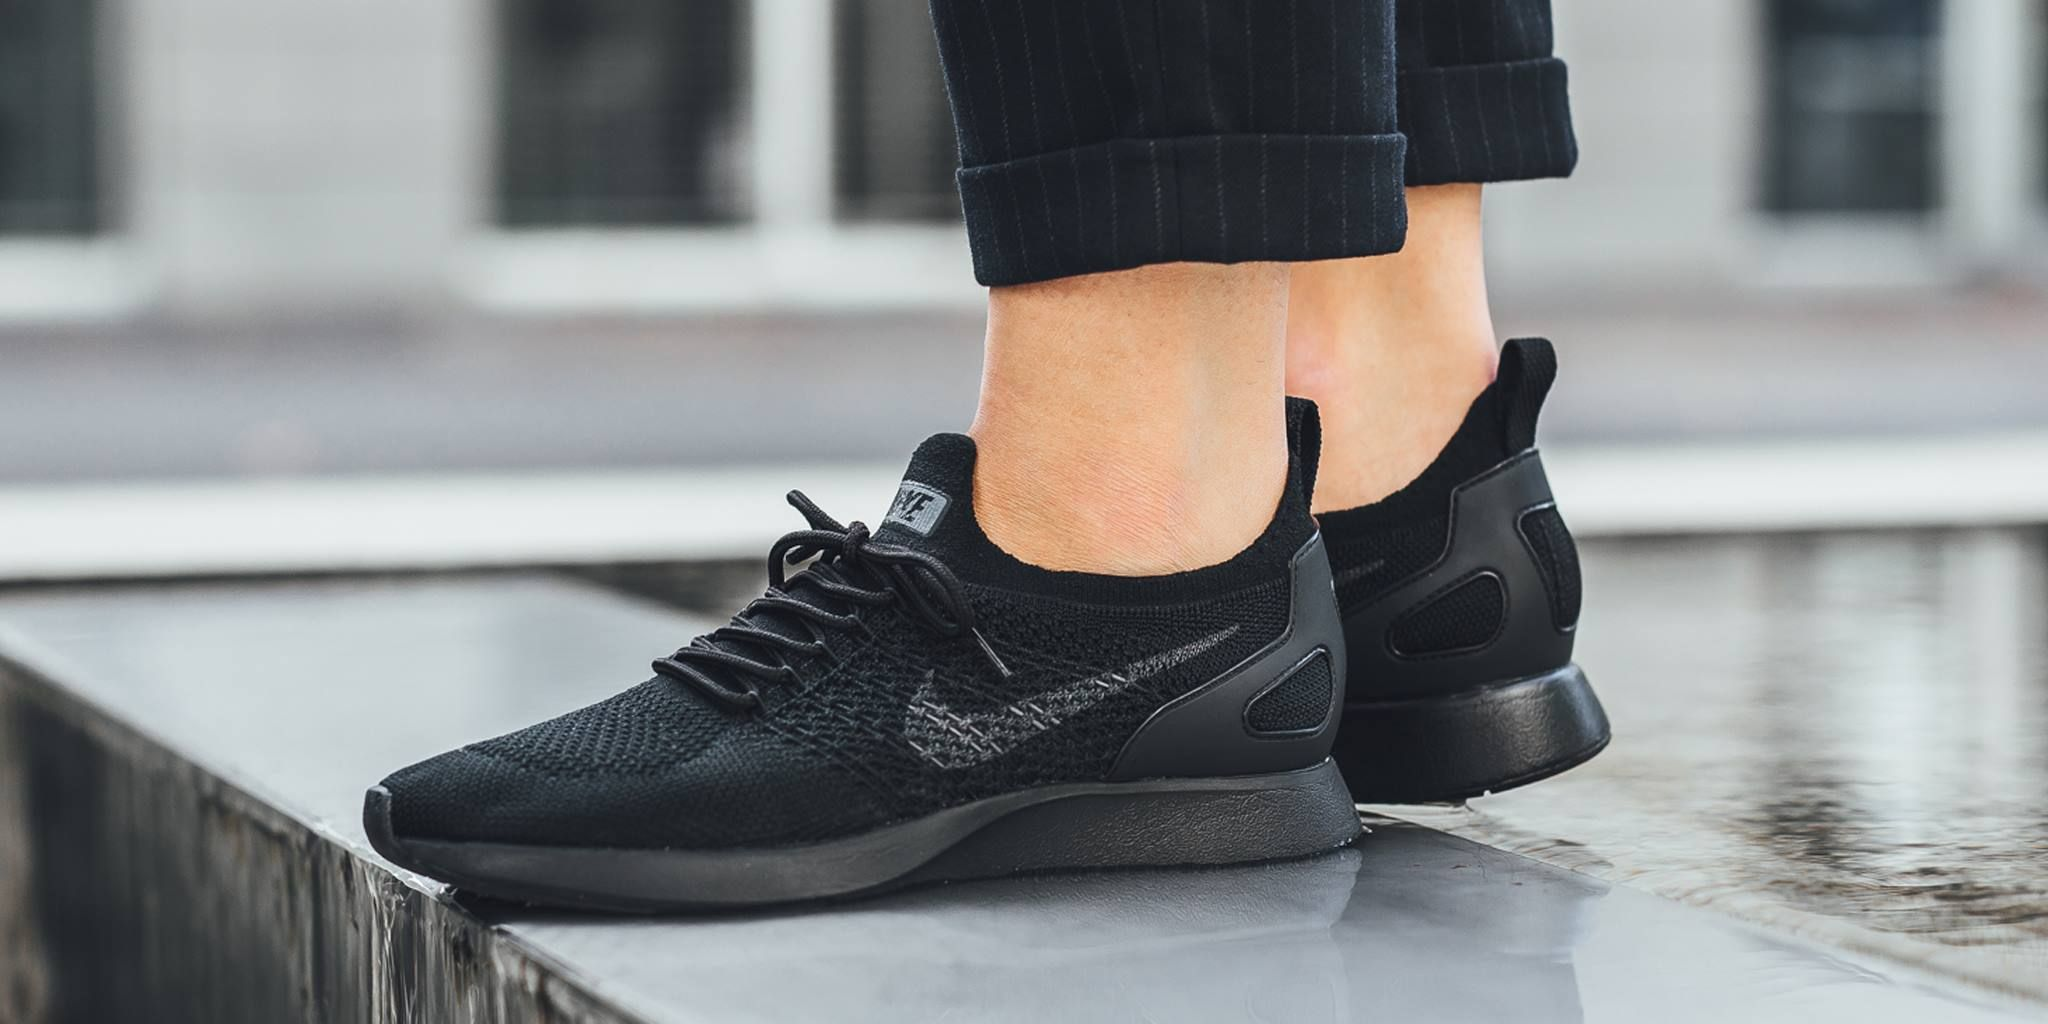 6b9da2ebcdbd Triple Black Lands On The Nike Air Zoom Mariah Flyknit Racer ...